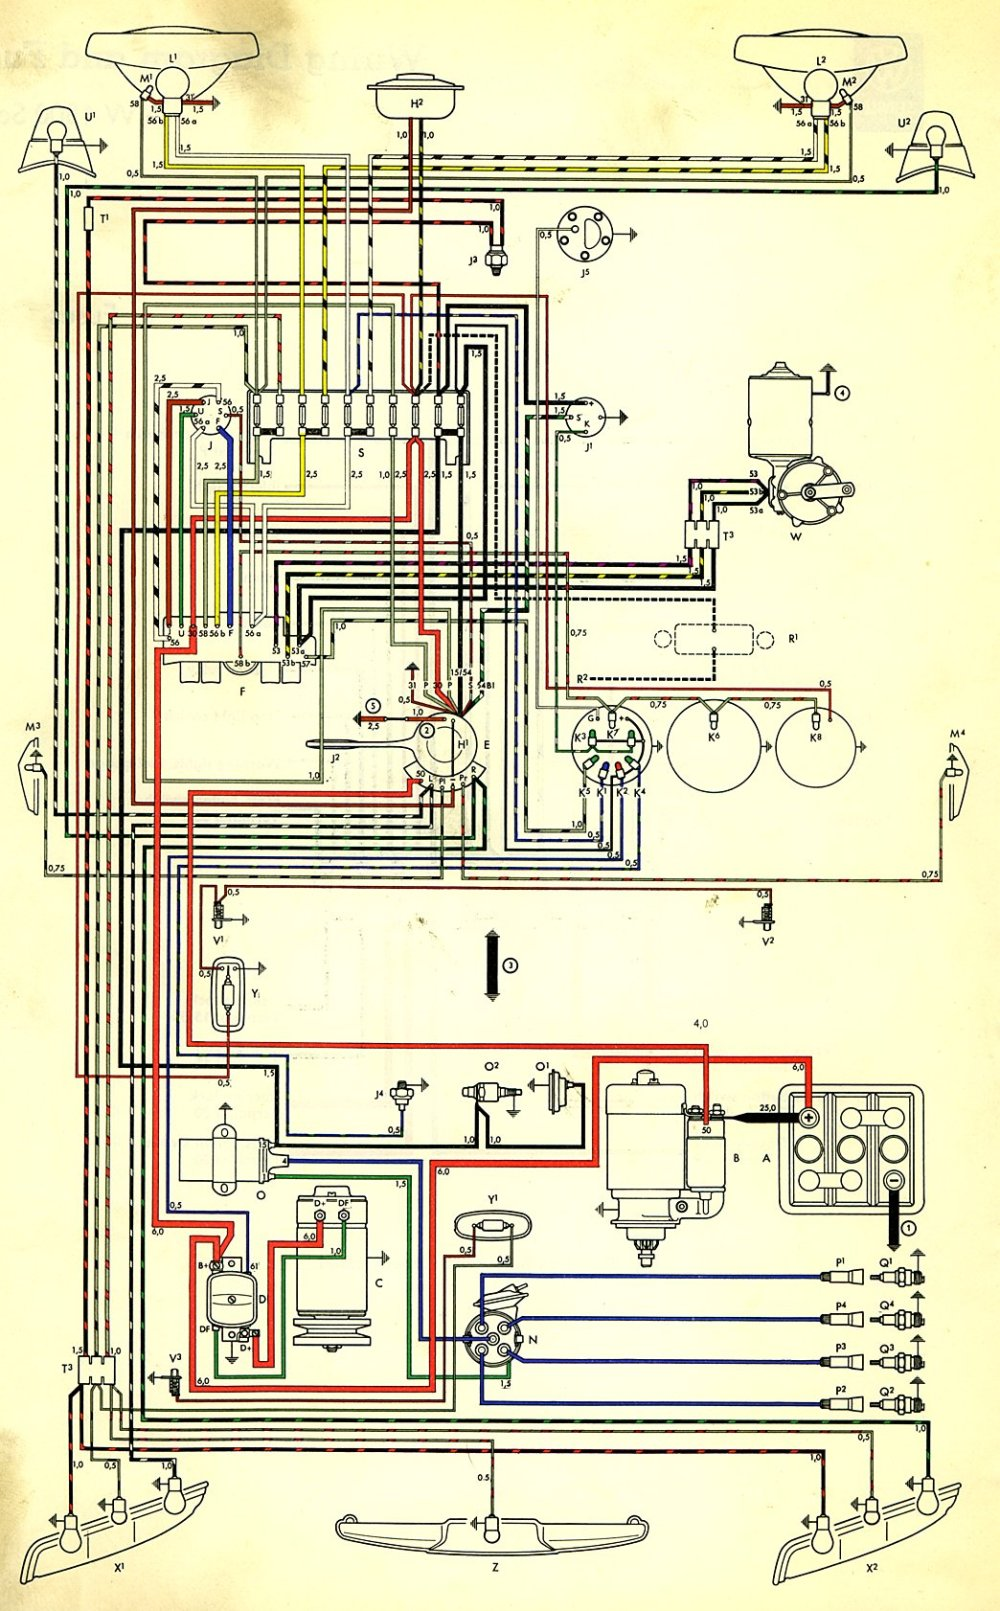 medium resolution of 1972 vw ignition system wiring diagram free download wiring diagram images gallery thesamba com type